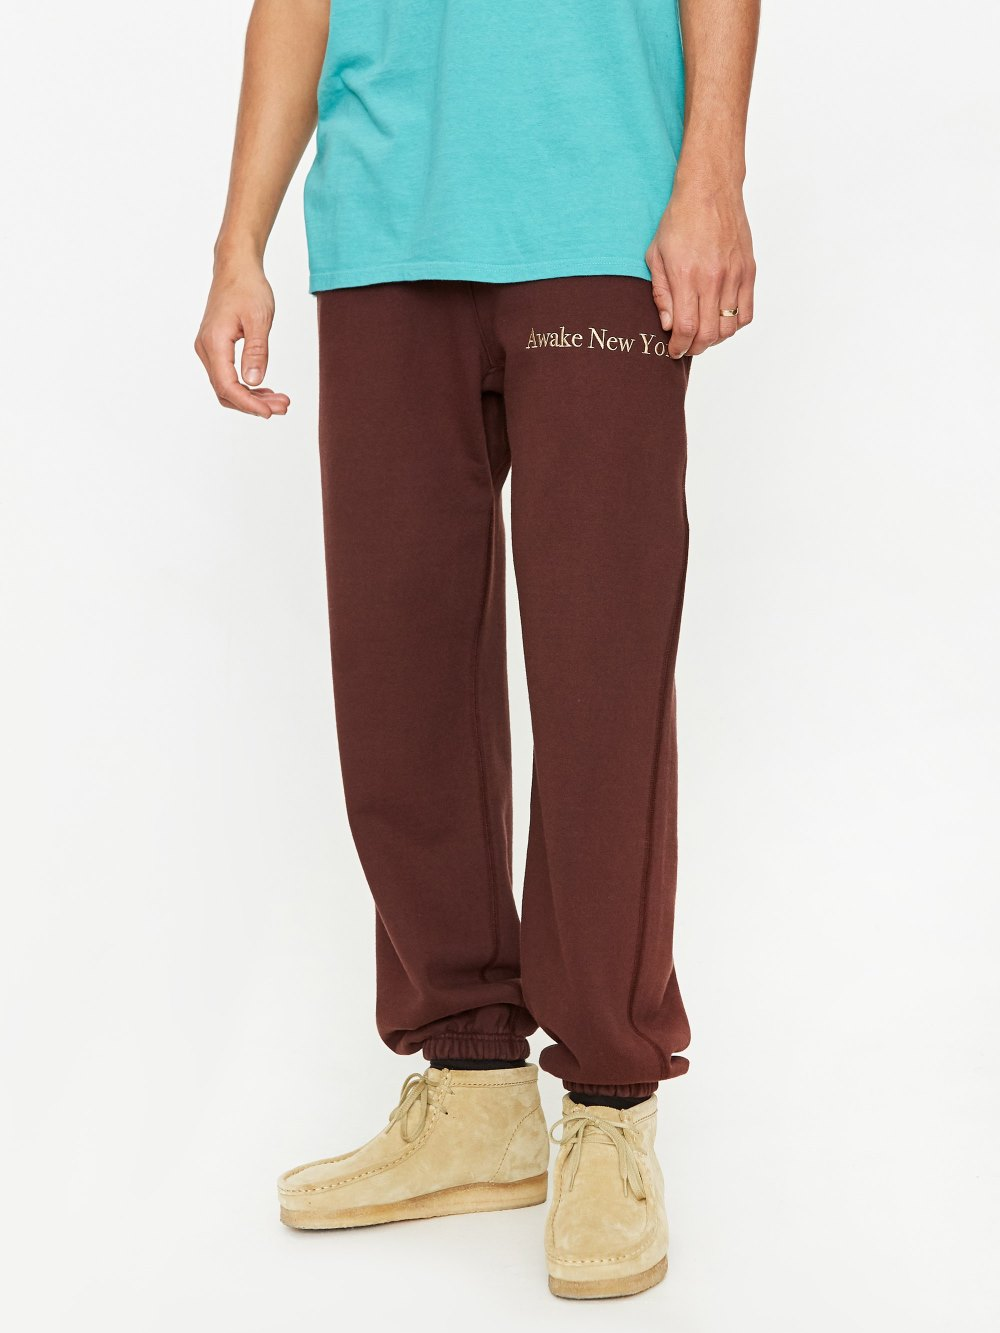 Awake Classic Outline Logo Paneled Embroidered Sweatpant Brown 2